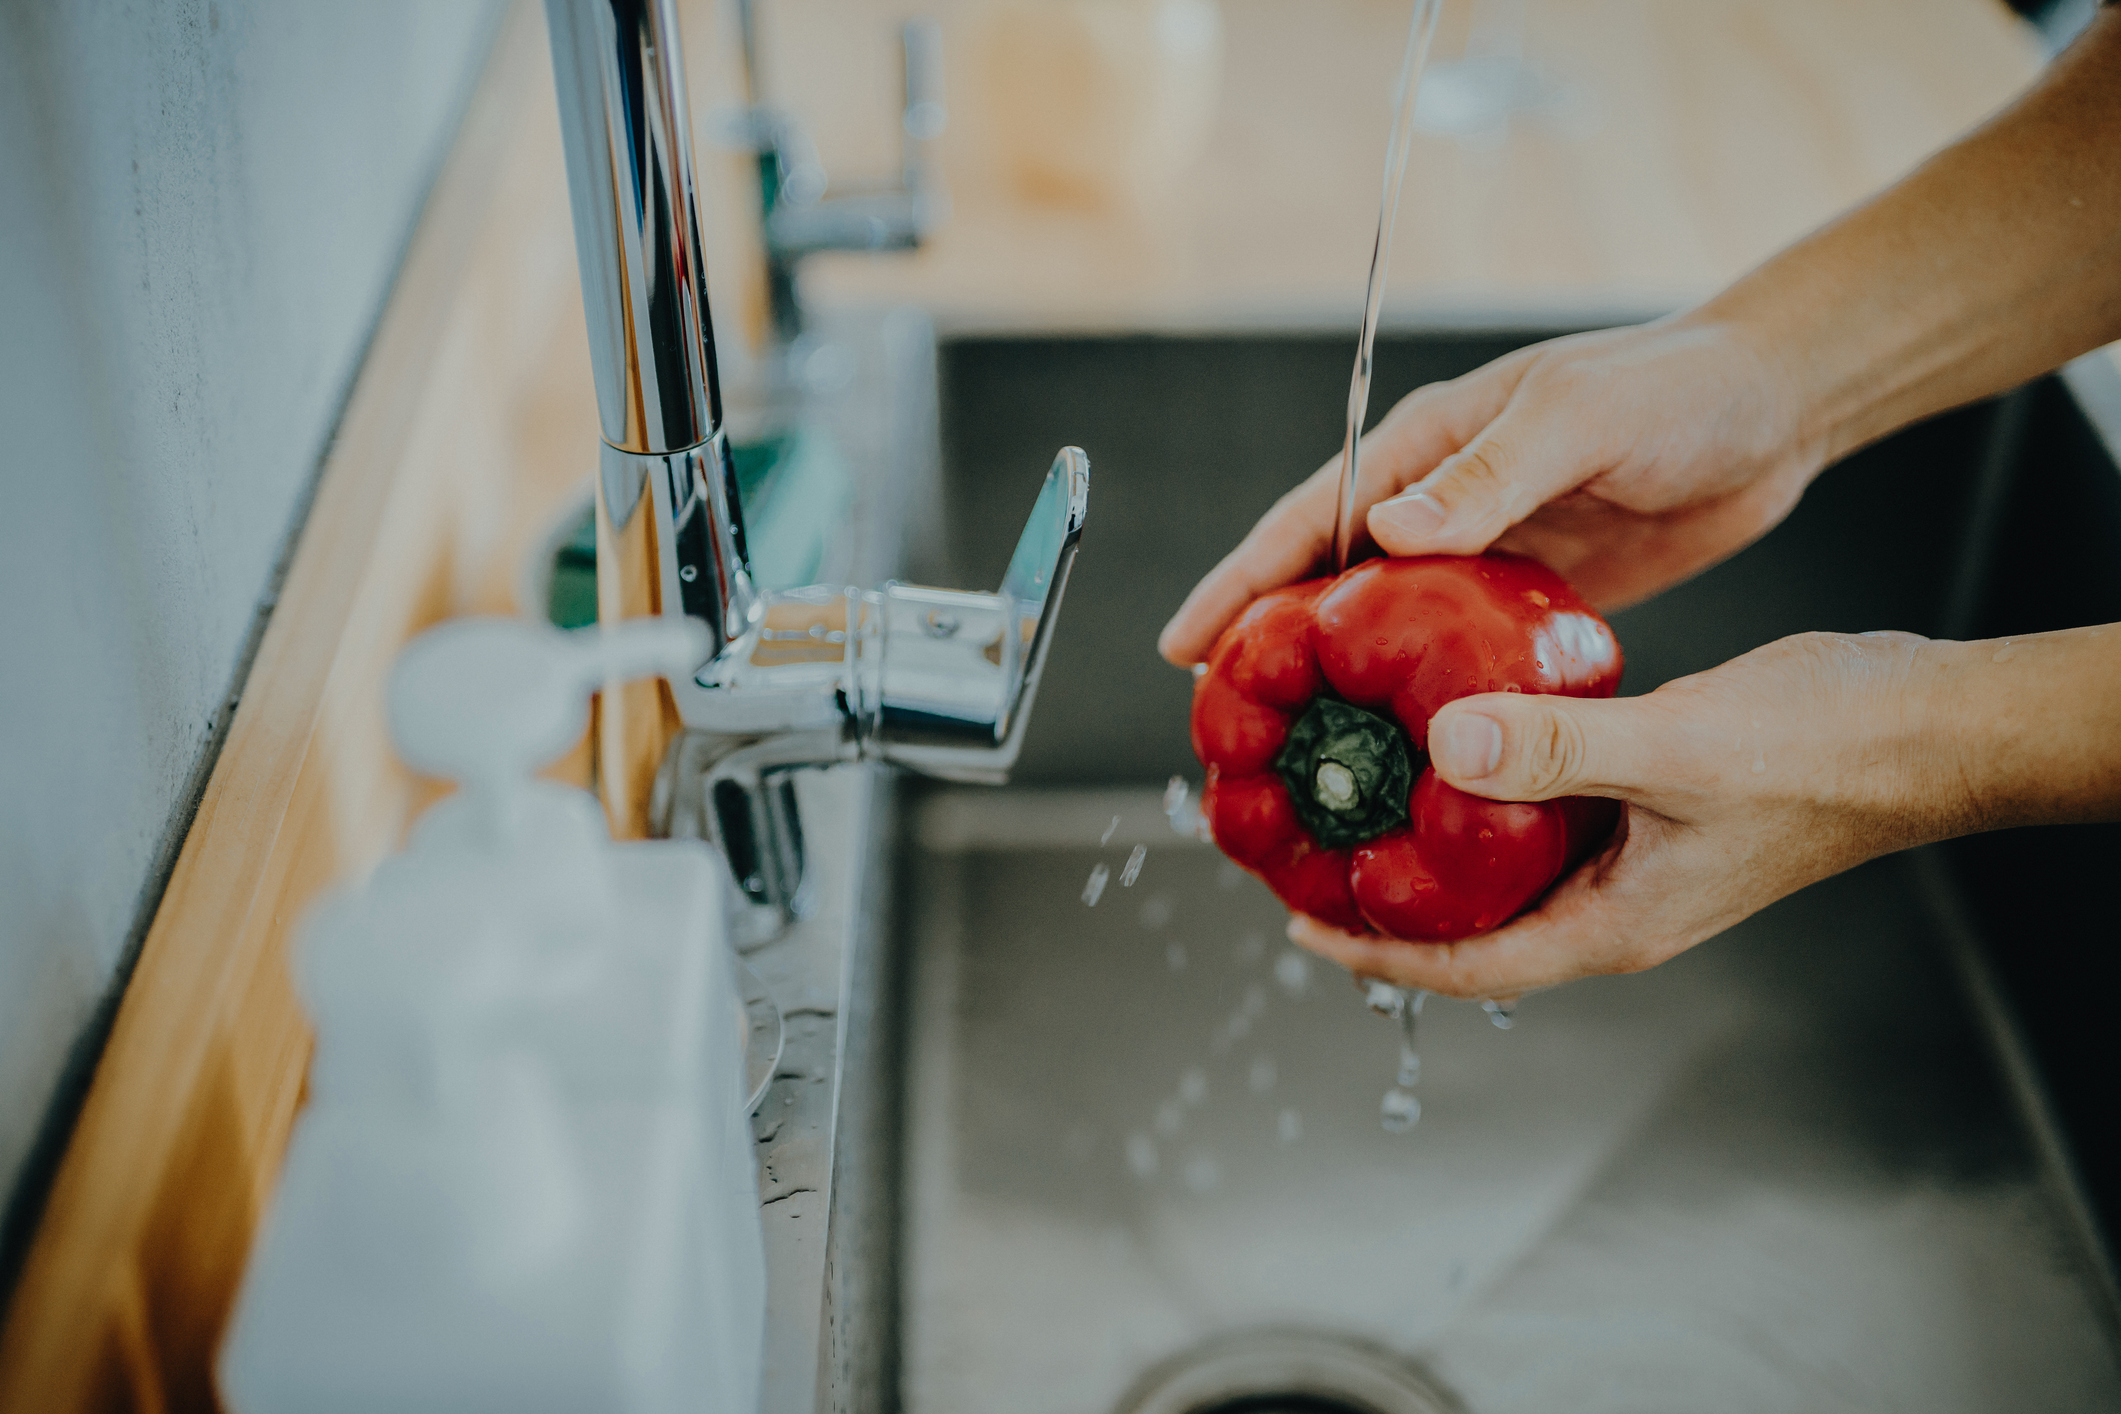 Close up of man's hand washing red bell pepper under running water in the kitchen